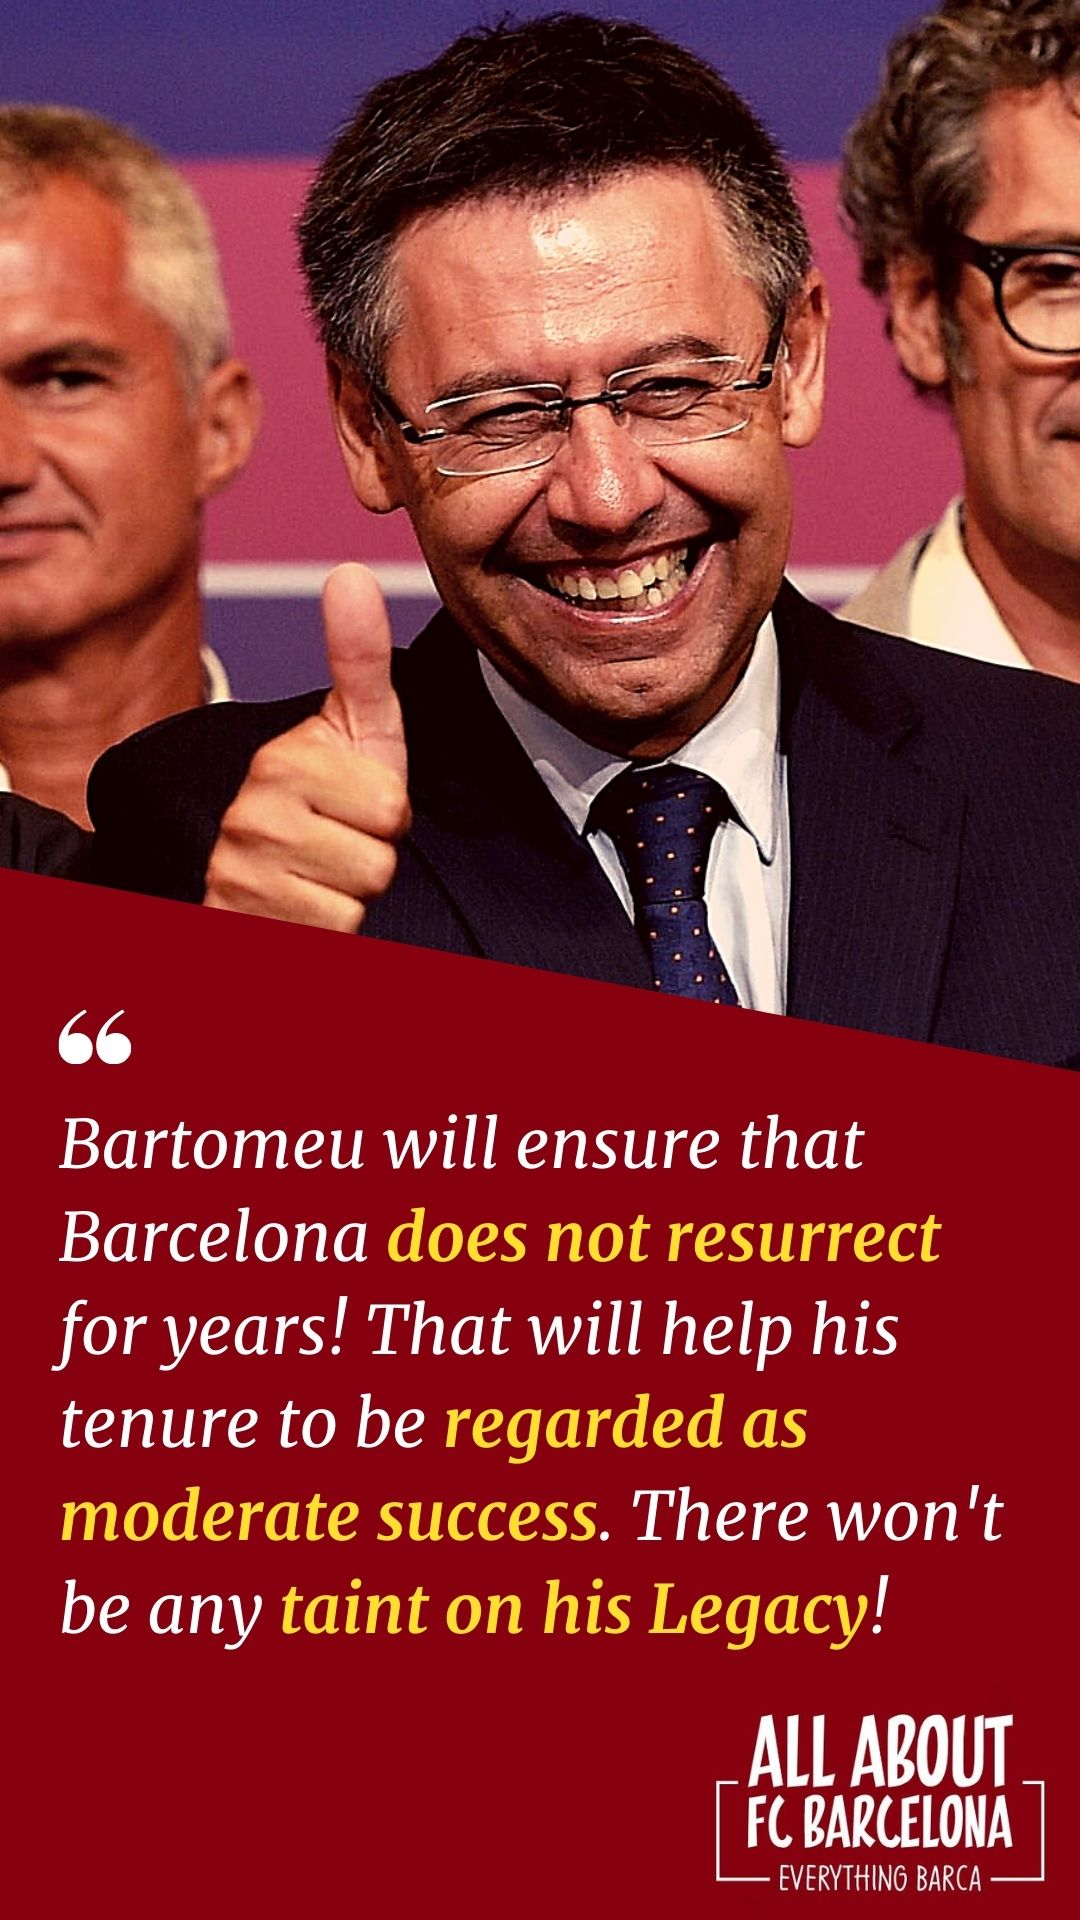 Bartomeu Carefully trying to Sabotage the Club to save his Legacy!